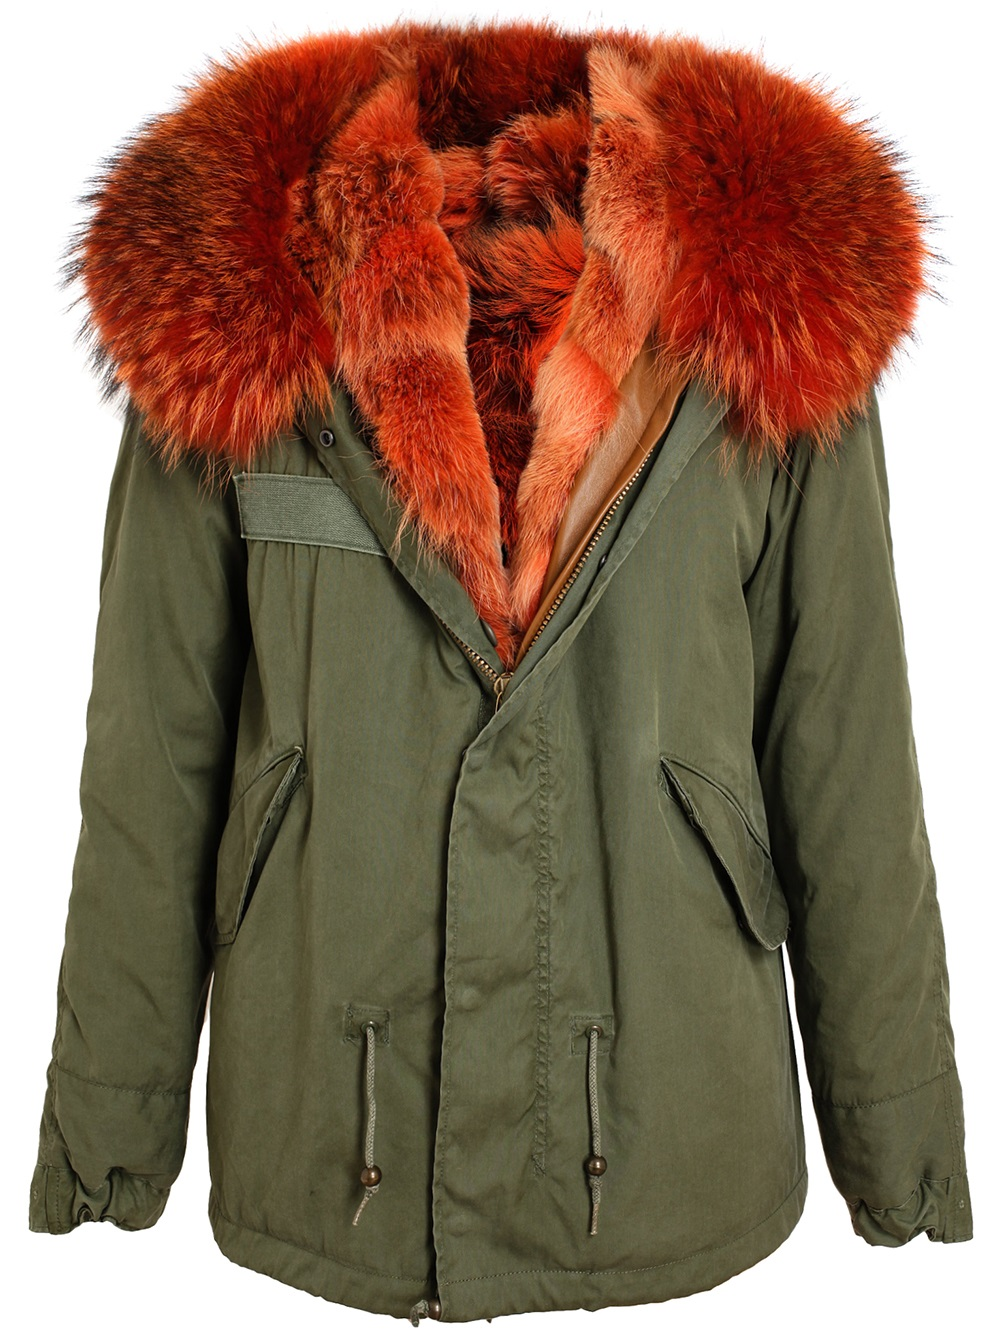 Mr & mrs italy Mr Mrs Furs Orange Fur Lined Parka Jacket in Green ...